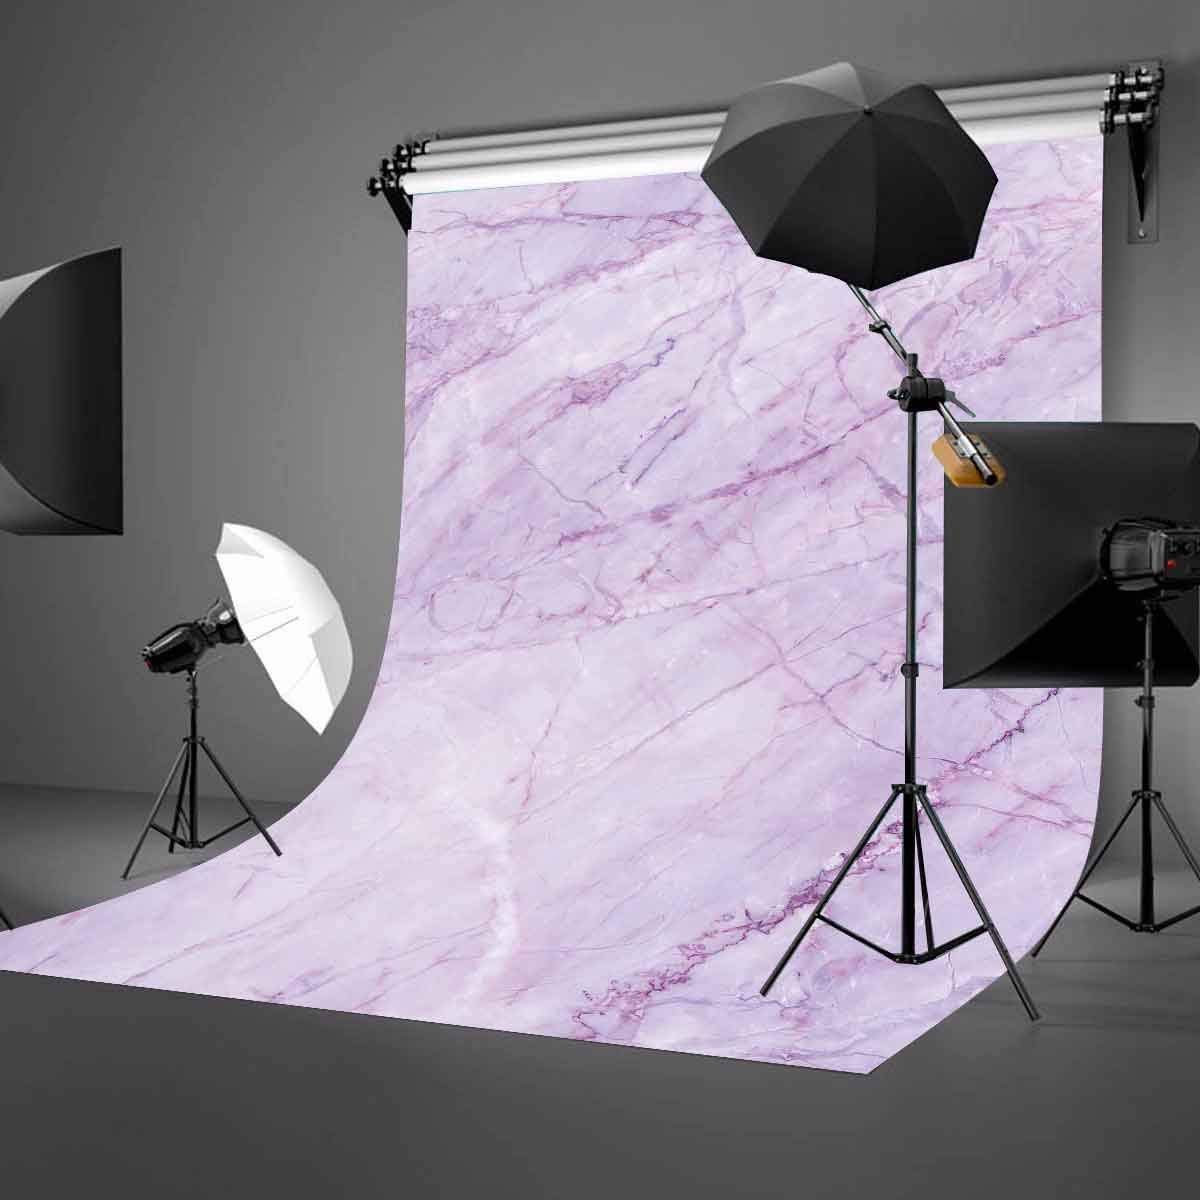 Image 2 - 5x7ft Violet Marble Texture Pattern Backdrop for Photo Shoot Background Photography Studio Props-in Photo Studio Accessories from Consumer Electronics